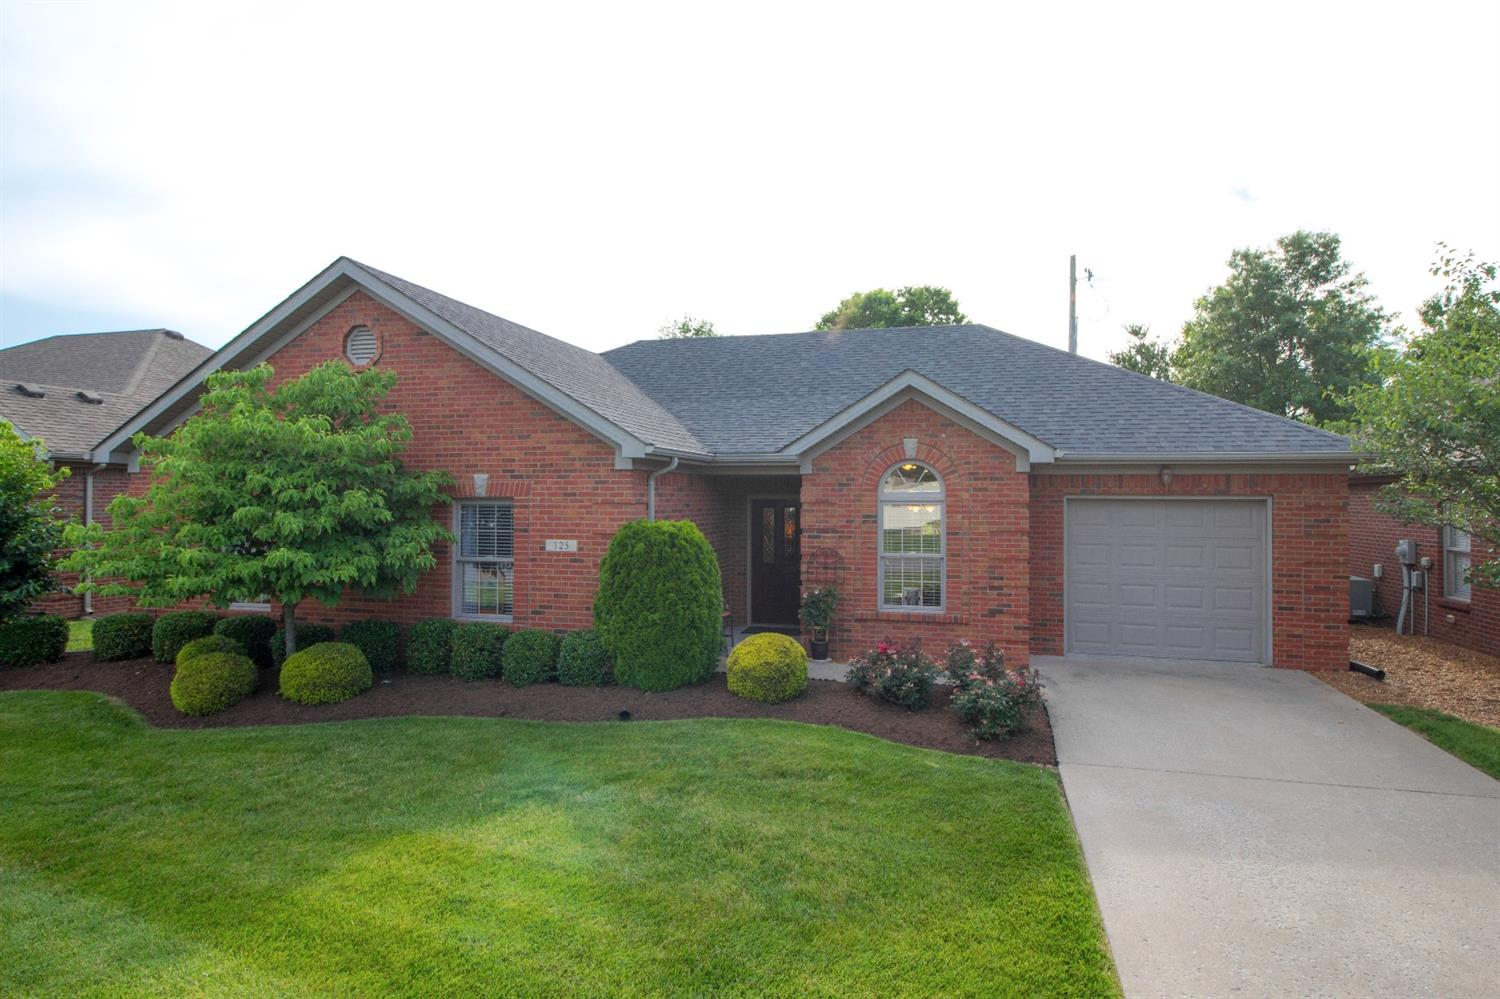 Wonderful%20senior%20living%20patio%20home%20in%20restricted%20area.%20%20Two%20bedroom%20and%20two%20bath%20with%20a%20great%20sunroom!